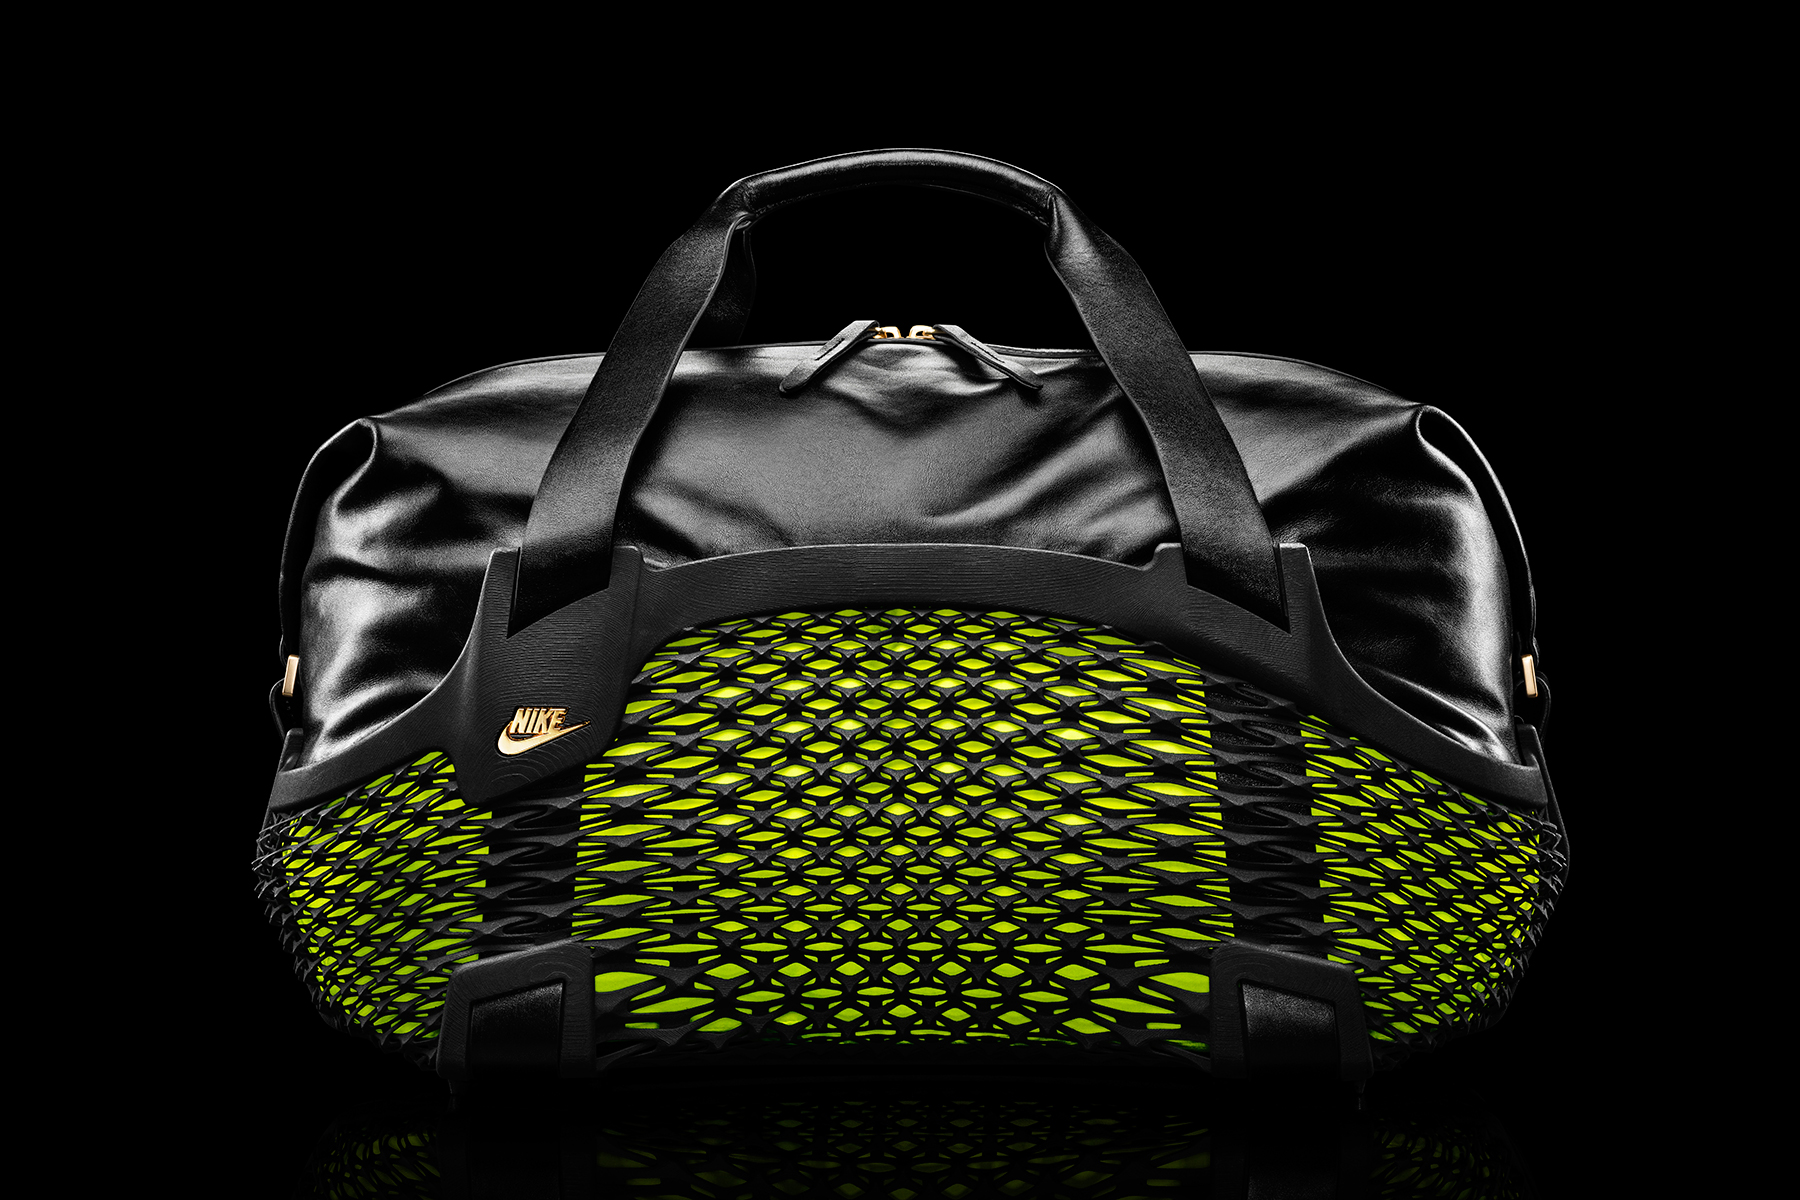 Nike Uses 3D Printing in its 2014 Summer Football Equipment Collection